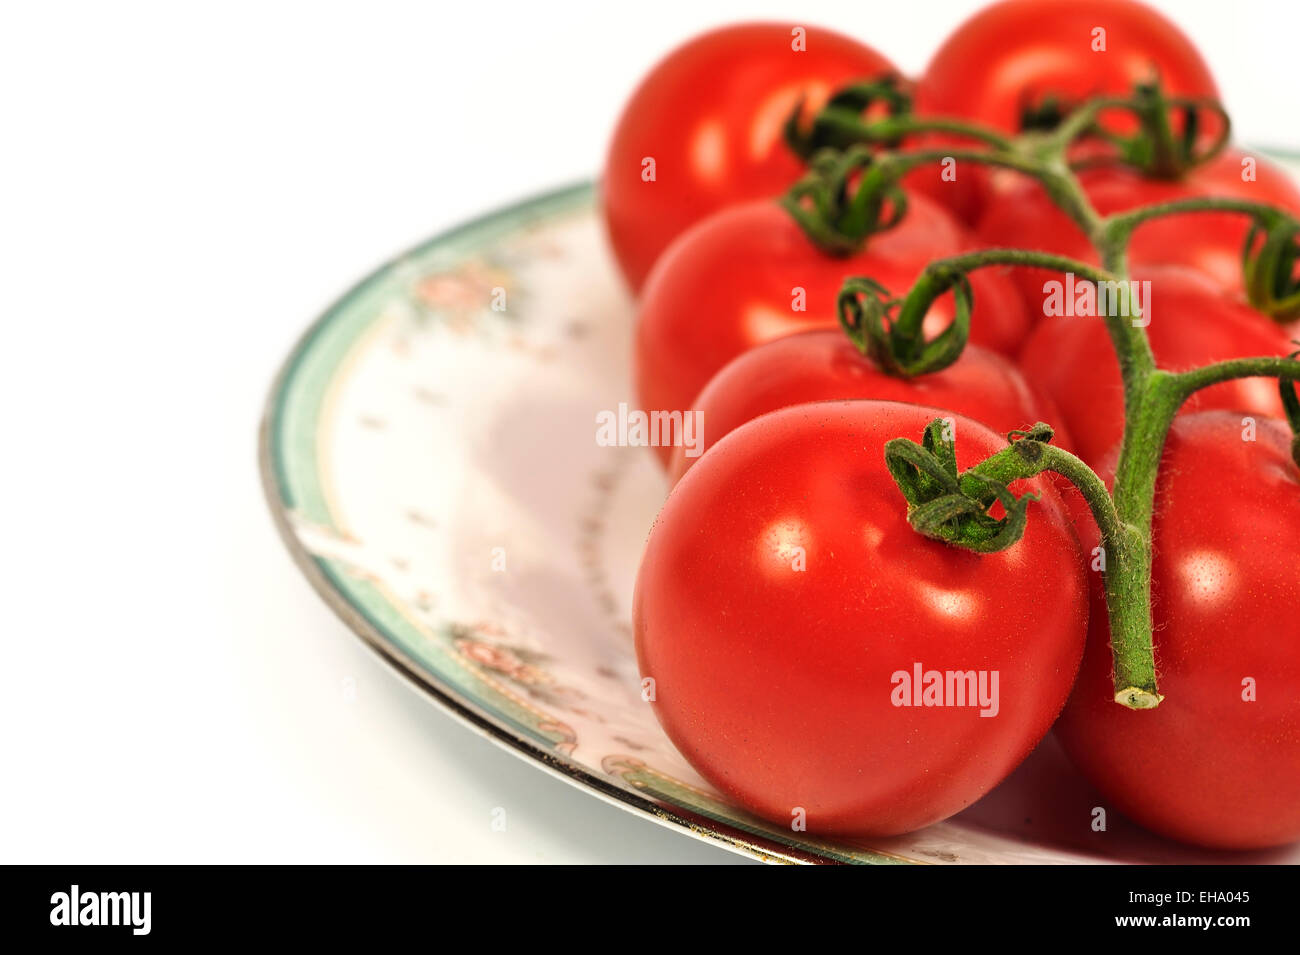 Plate of ripe tomatoes on the vine - Stock Image